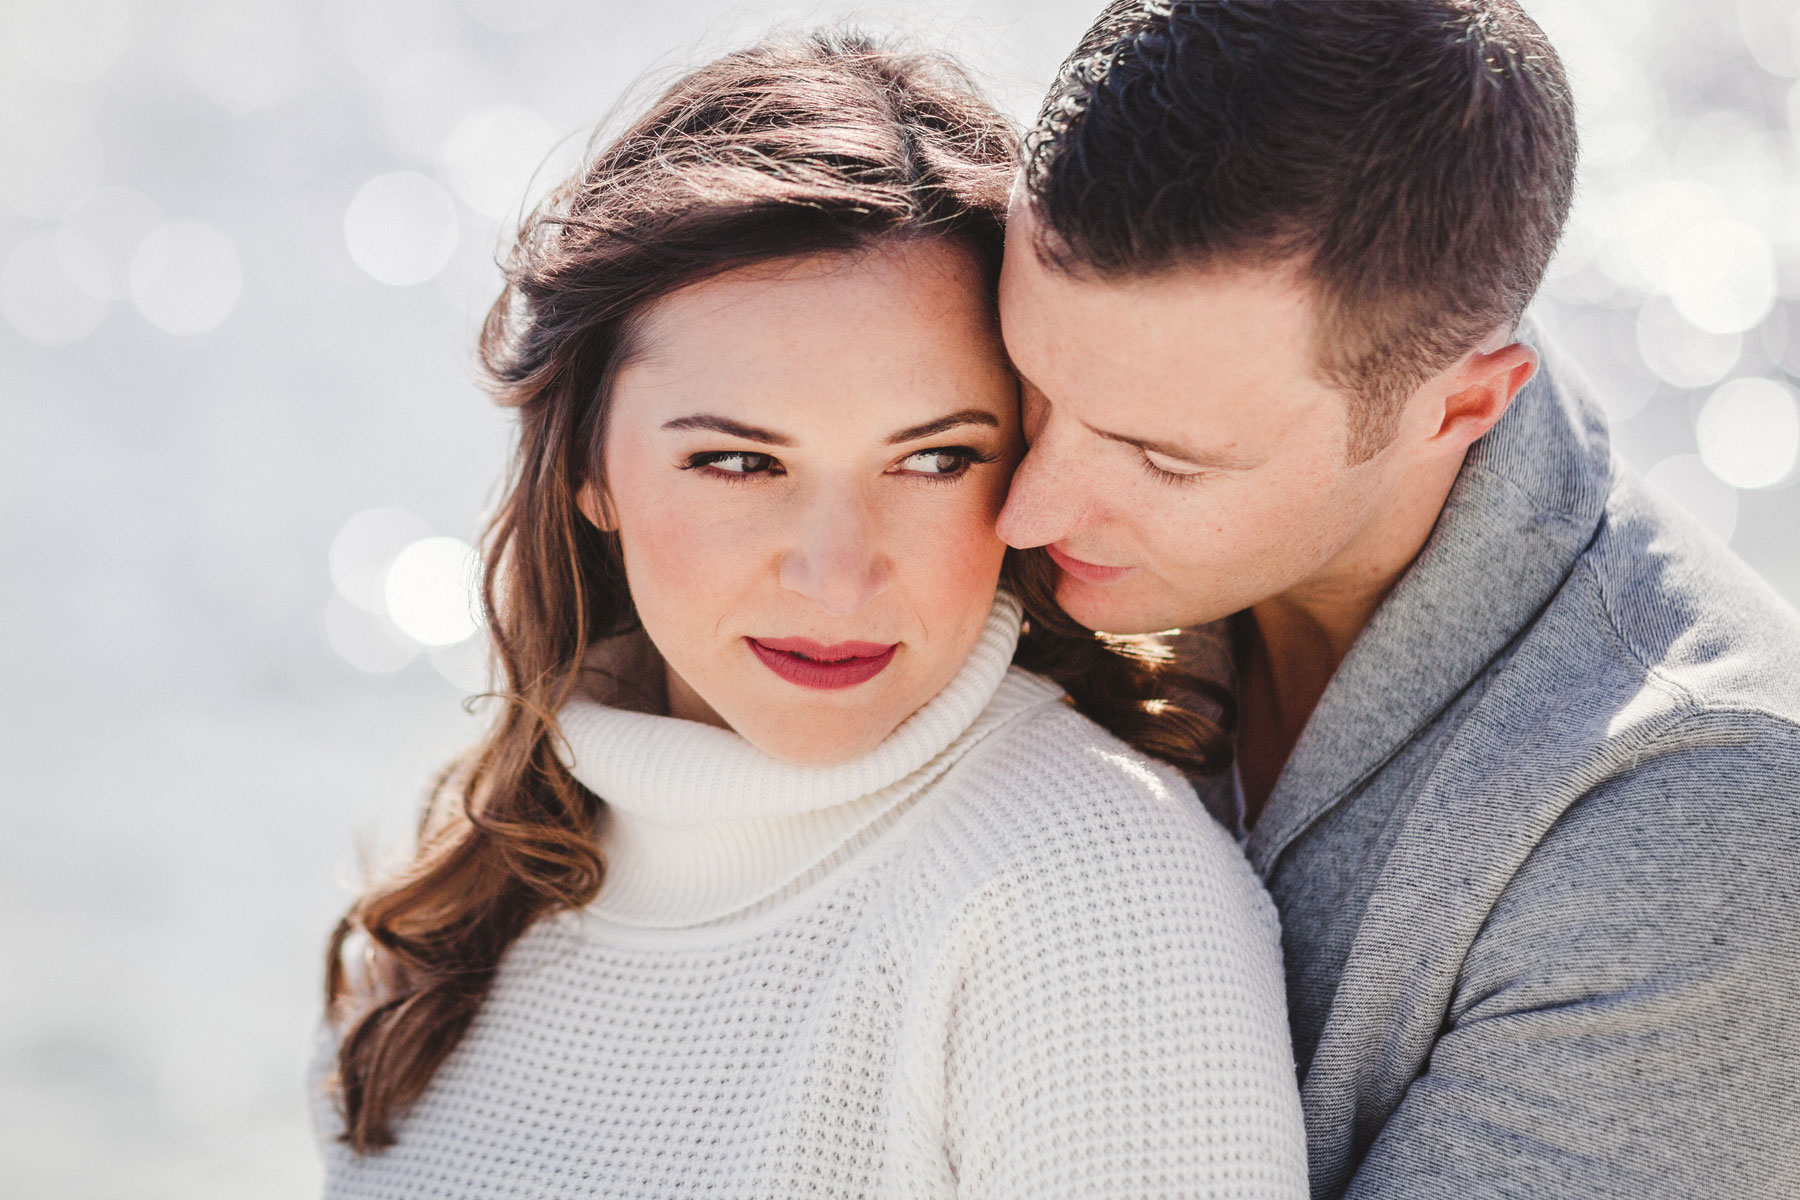 5 QUICK TIPS TO KICK-ASS ENGAGEMENT PICTURES